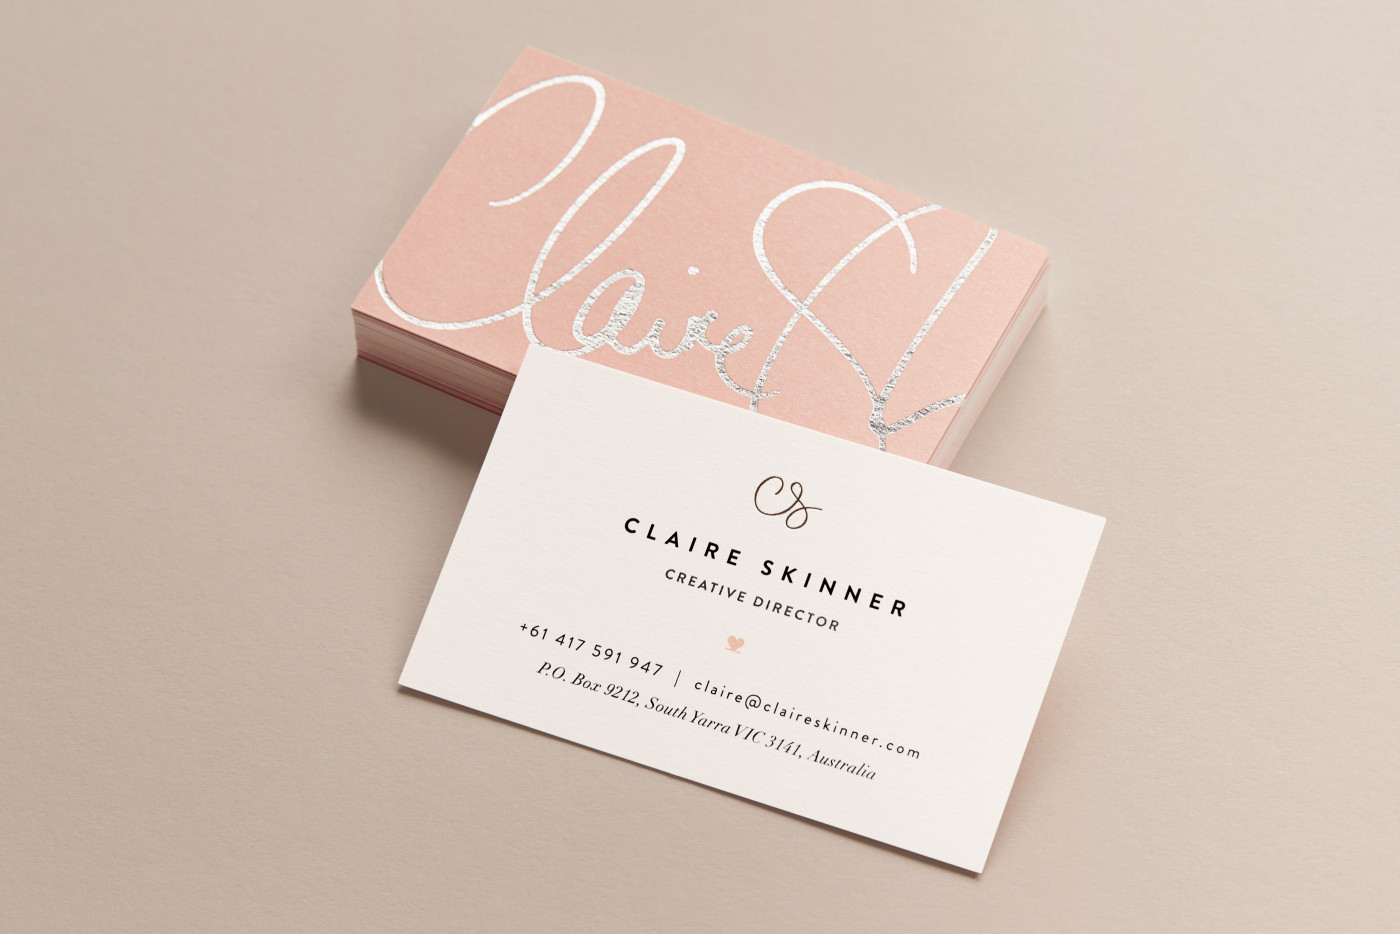 Claire skinner creative director personal branding claire personal branding reheart Image collections